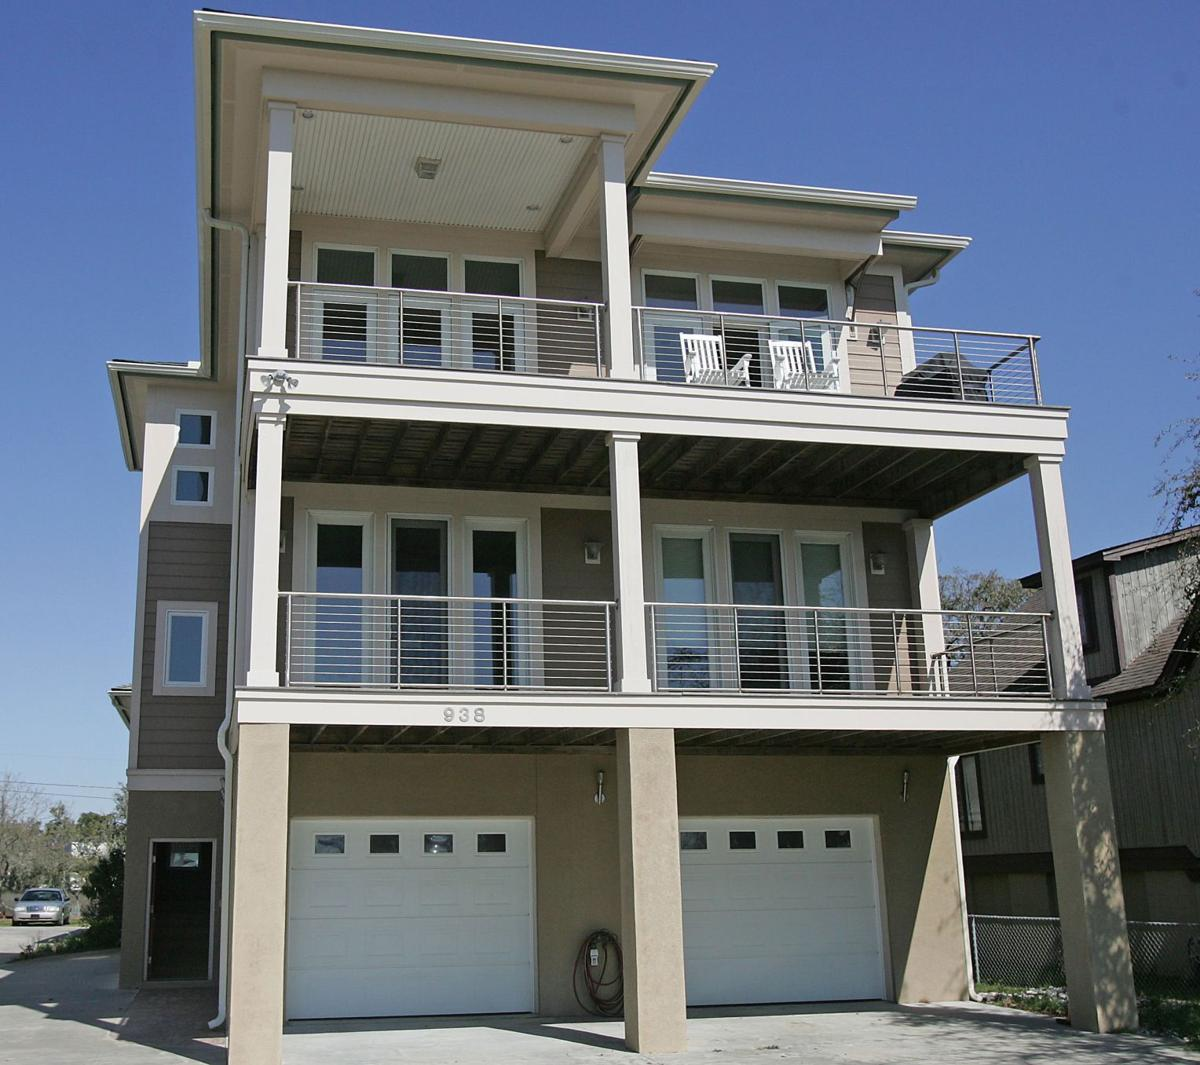 938 W. Oceanview Road — Waterside sights mark main digs, suite on removed James Island property